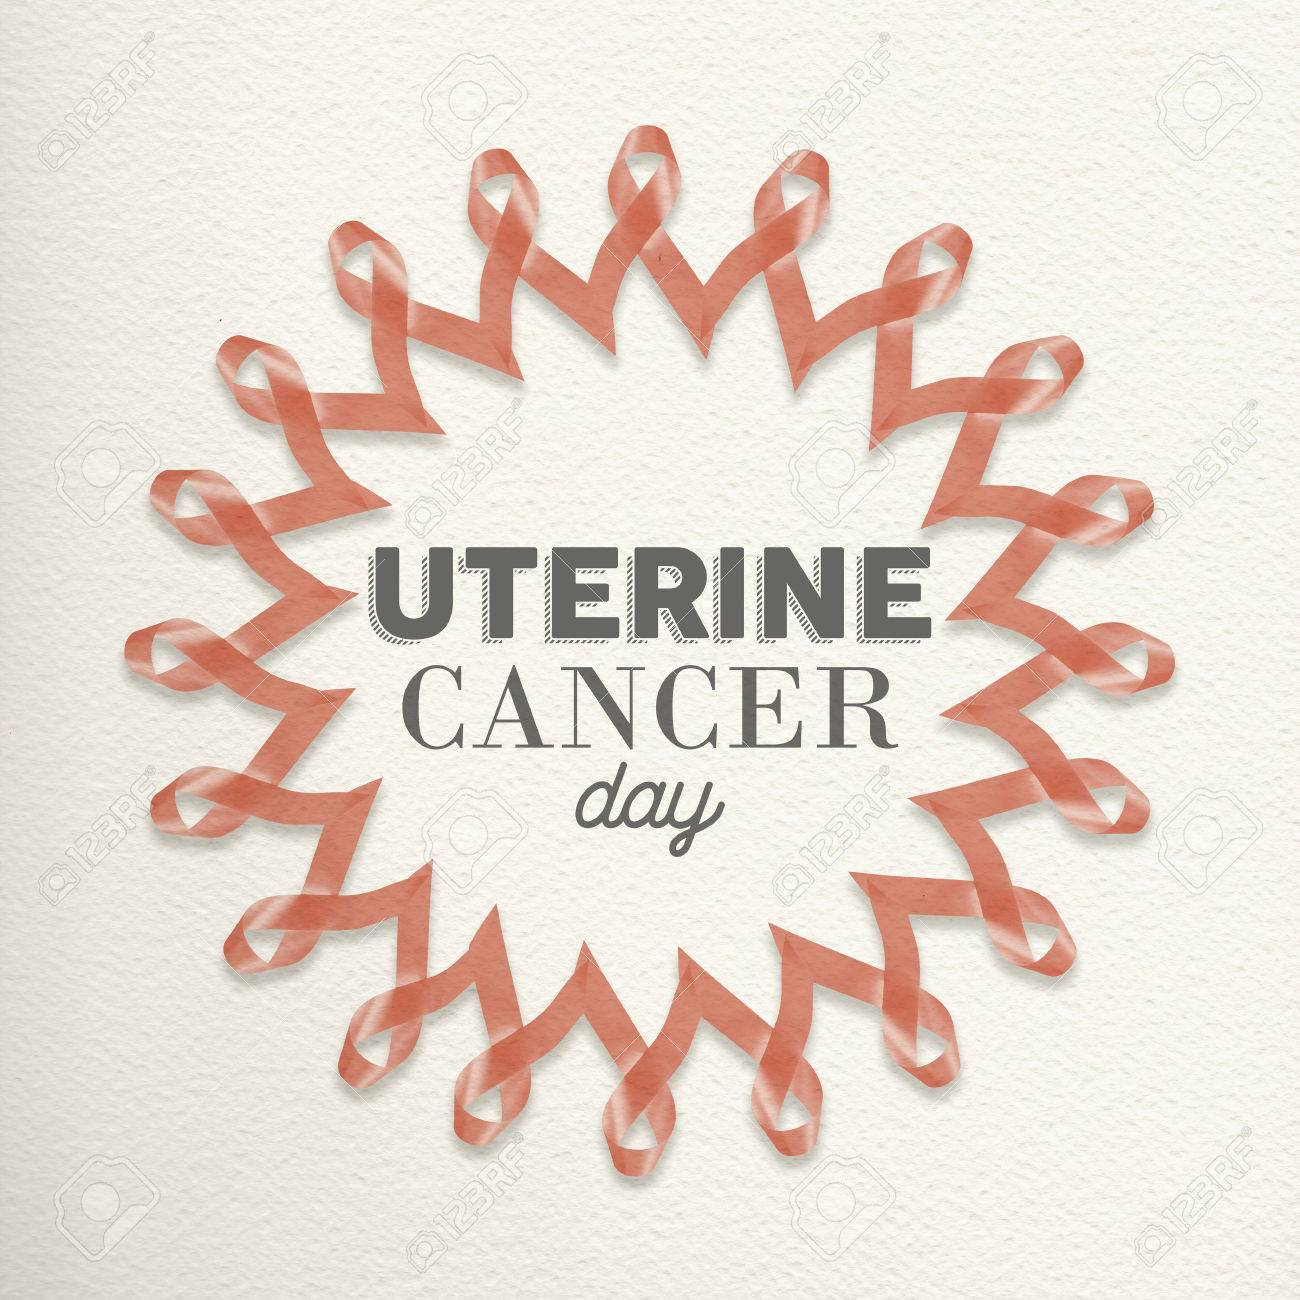 Uterine Cancer Day Mandala Design Made Of Peach Pink Ribbons With ...